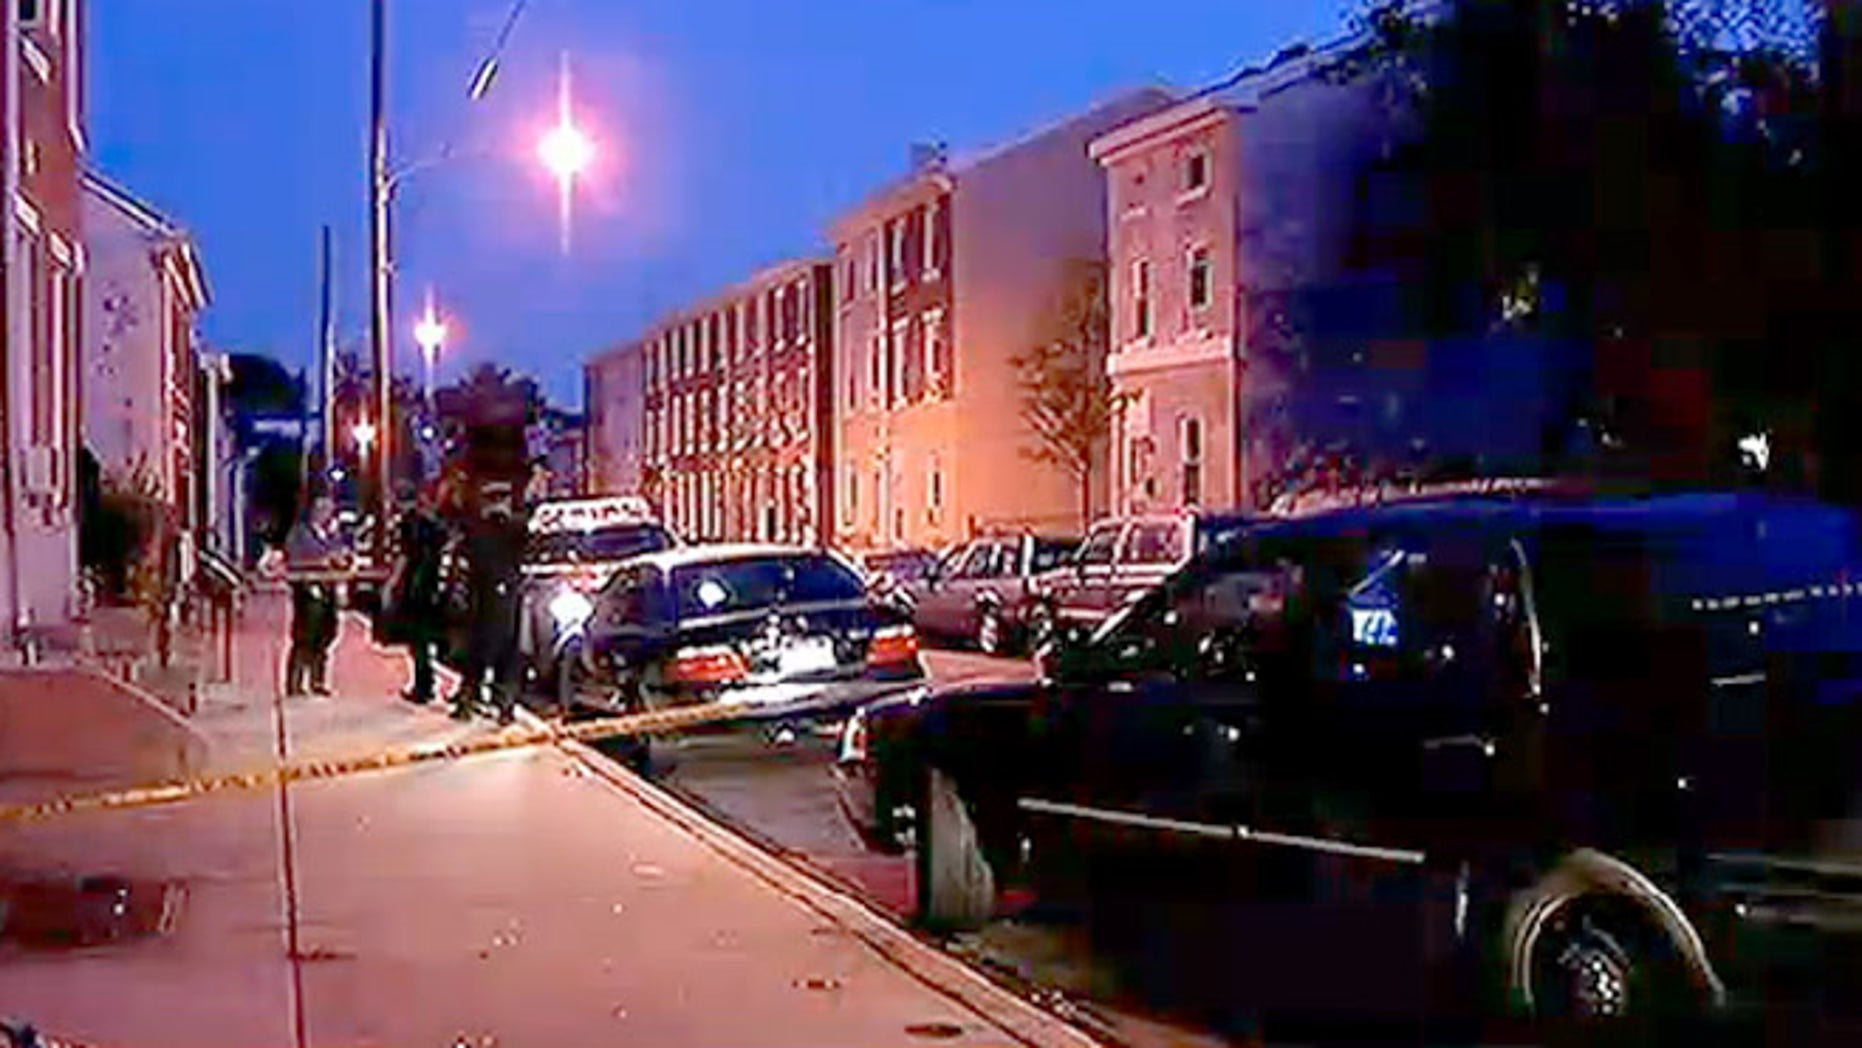 Police investigate the scene where three people suffered gunshot wounds during an early morning shooting in Norristown, Pa.